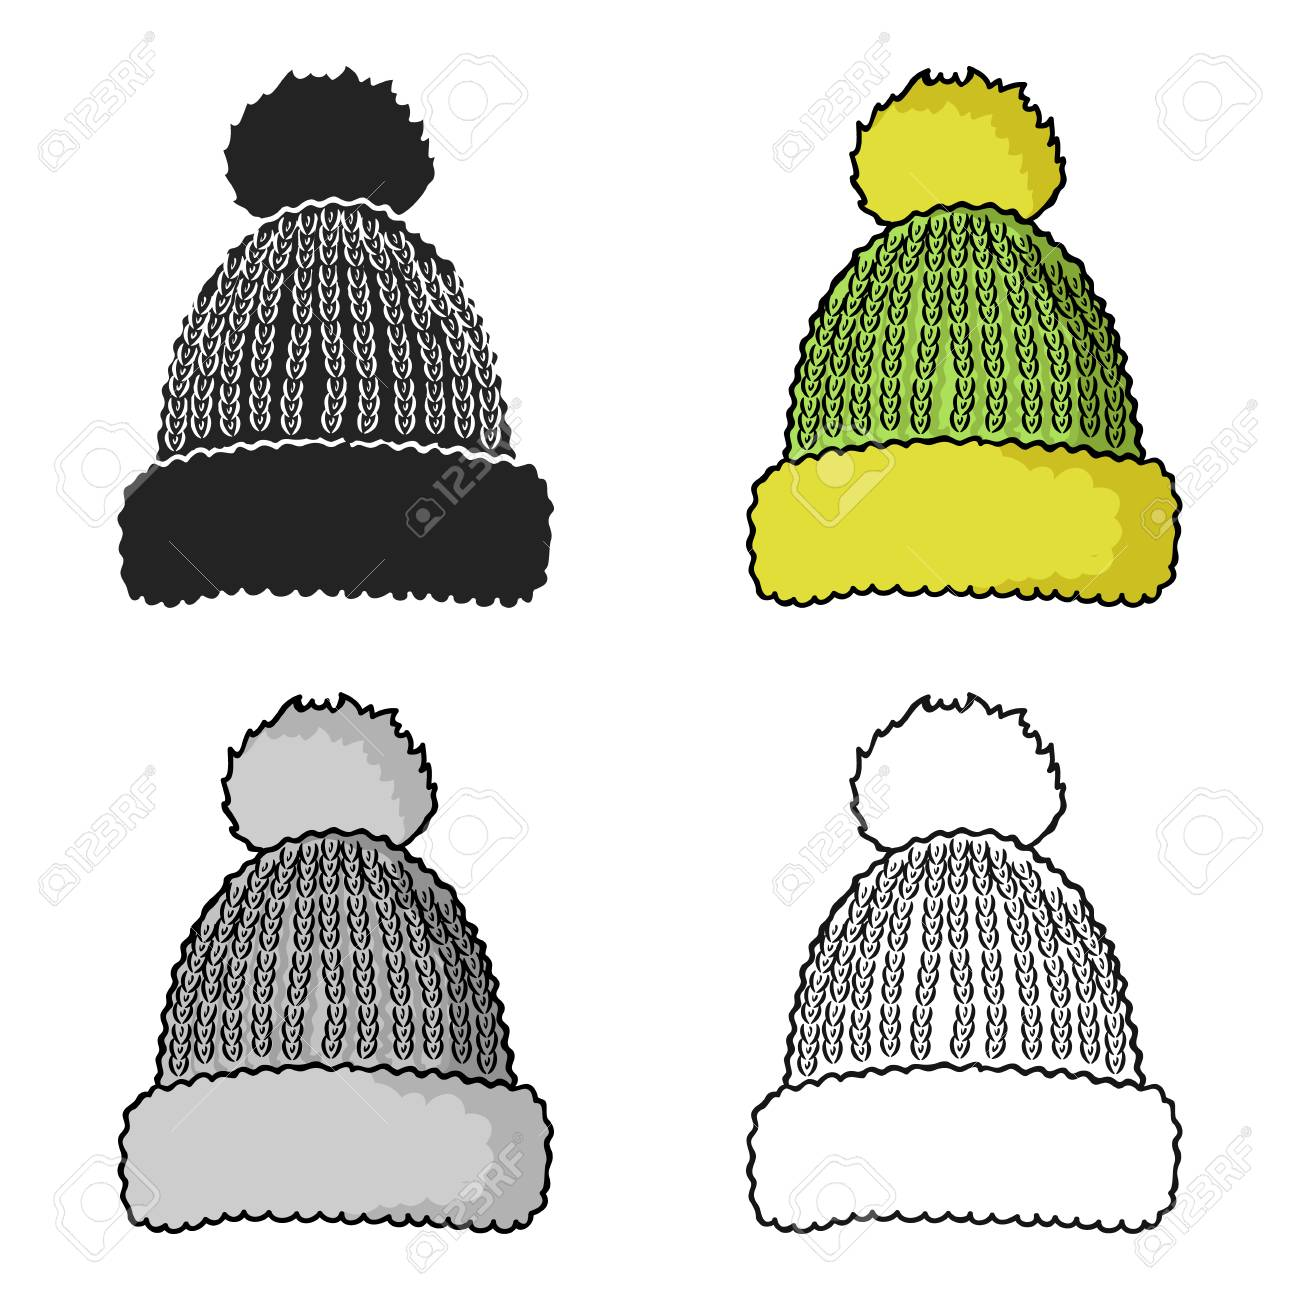 Knit cap icon in cartoon style isolated on white background. Ski resort symbol stock vector illustration. - 76890975